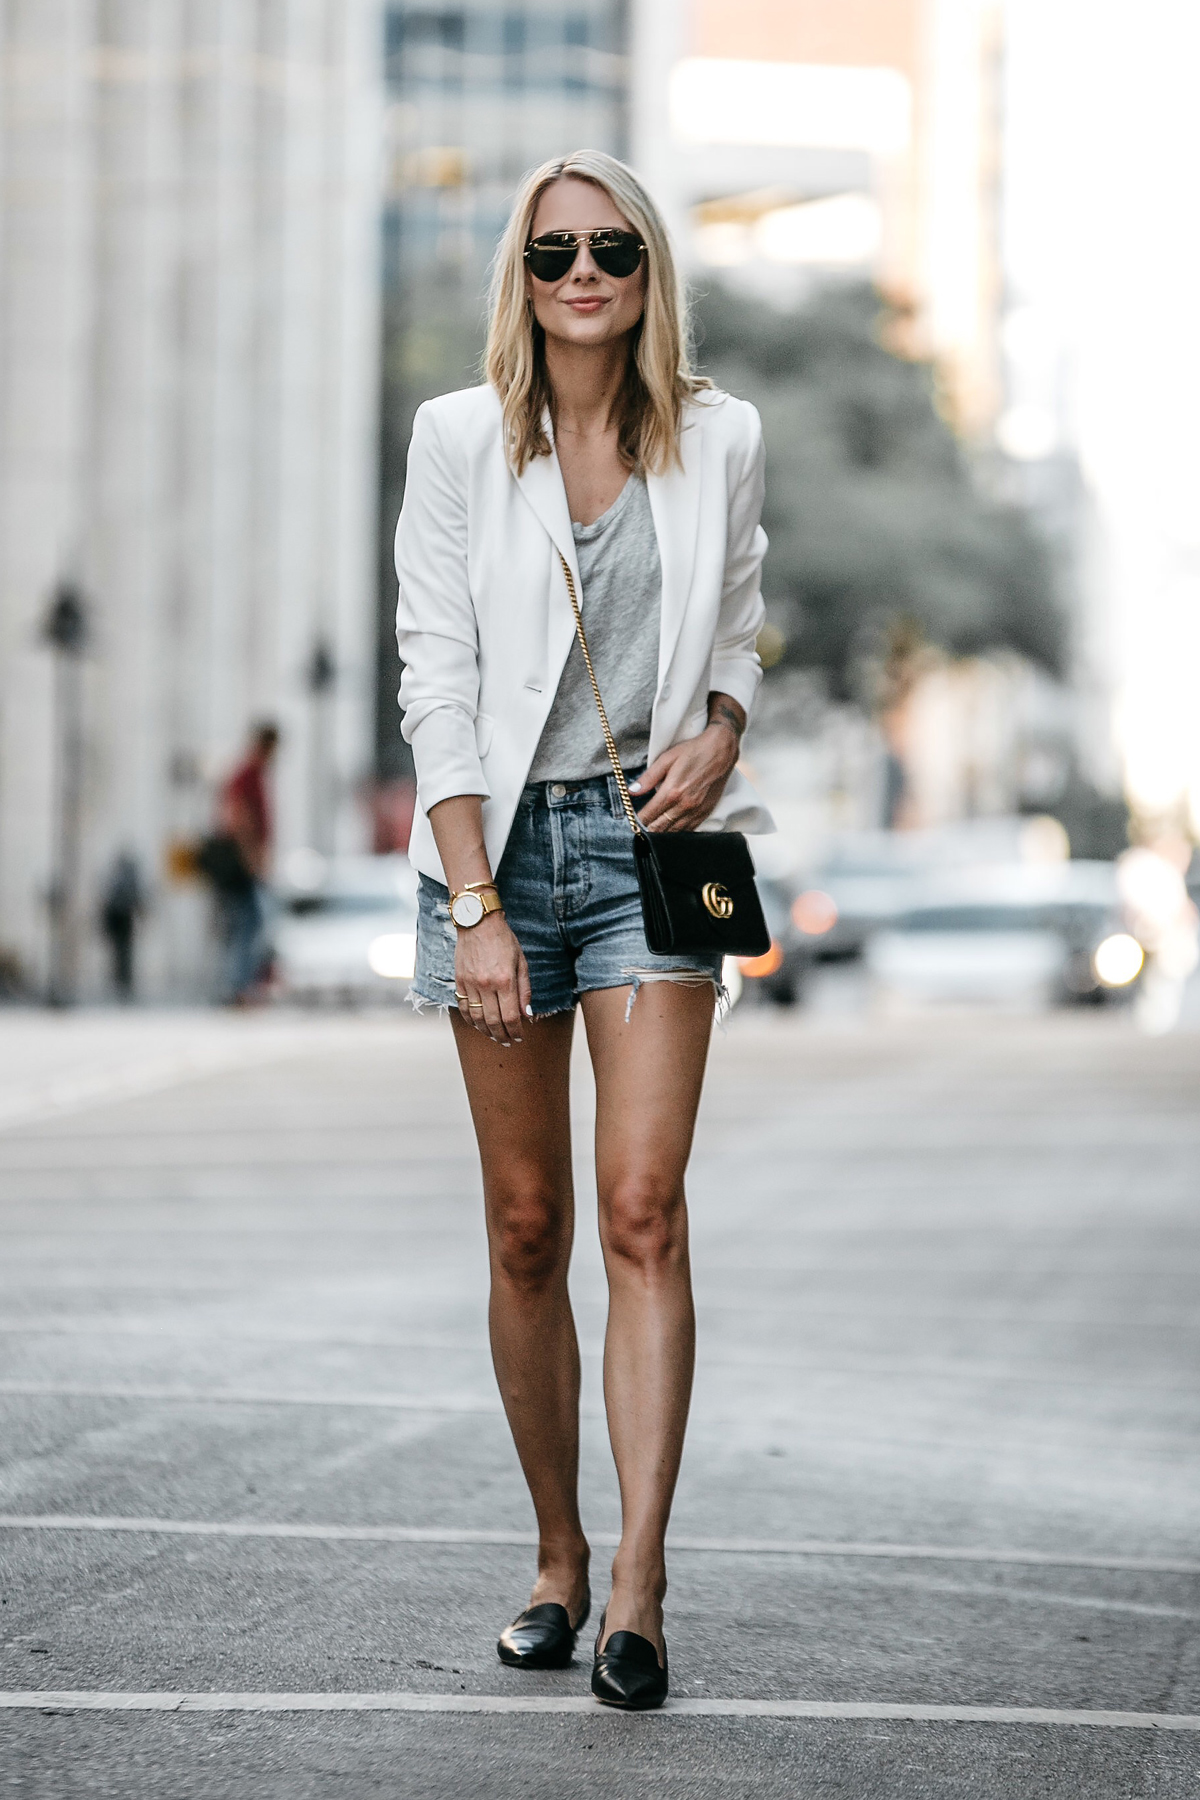 58e76499f81 Blonde Woman Wearing Nordstrom White Blazer Everlane Grey Tshirt Topshop  Ripped Denim Shorts Outfit Gucci Marmont